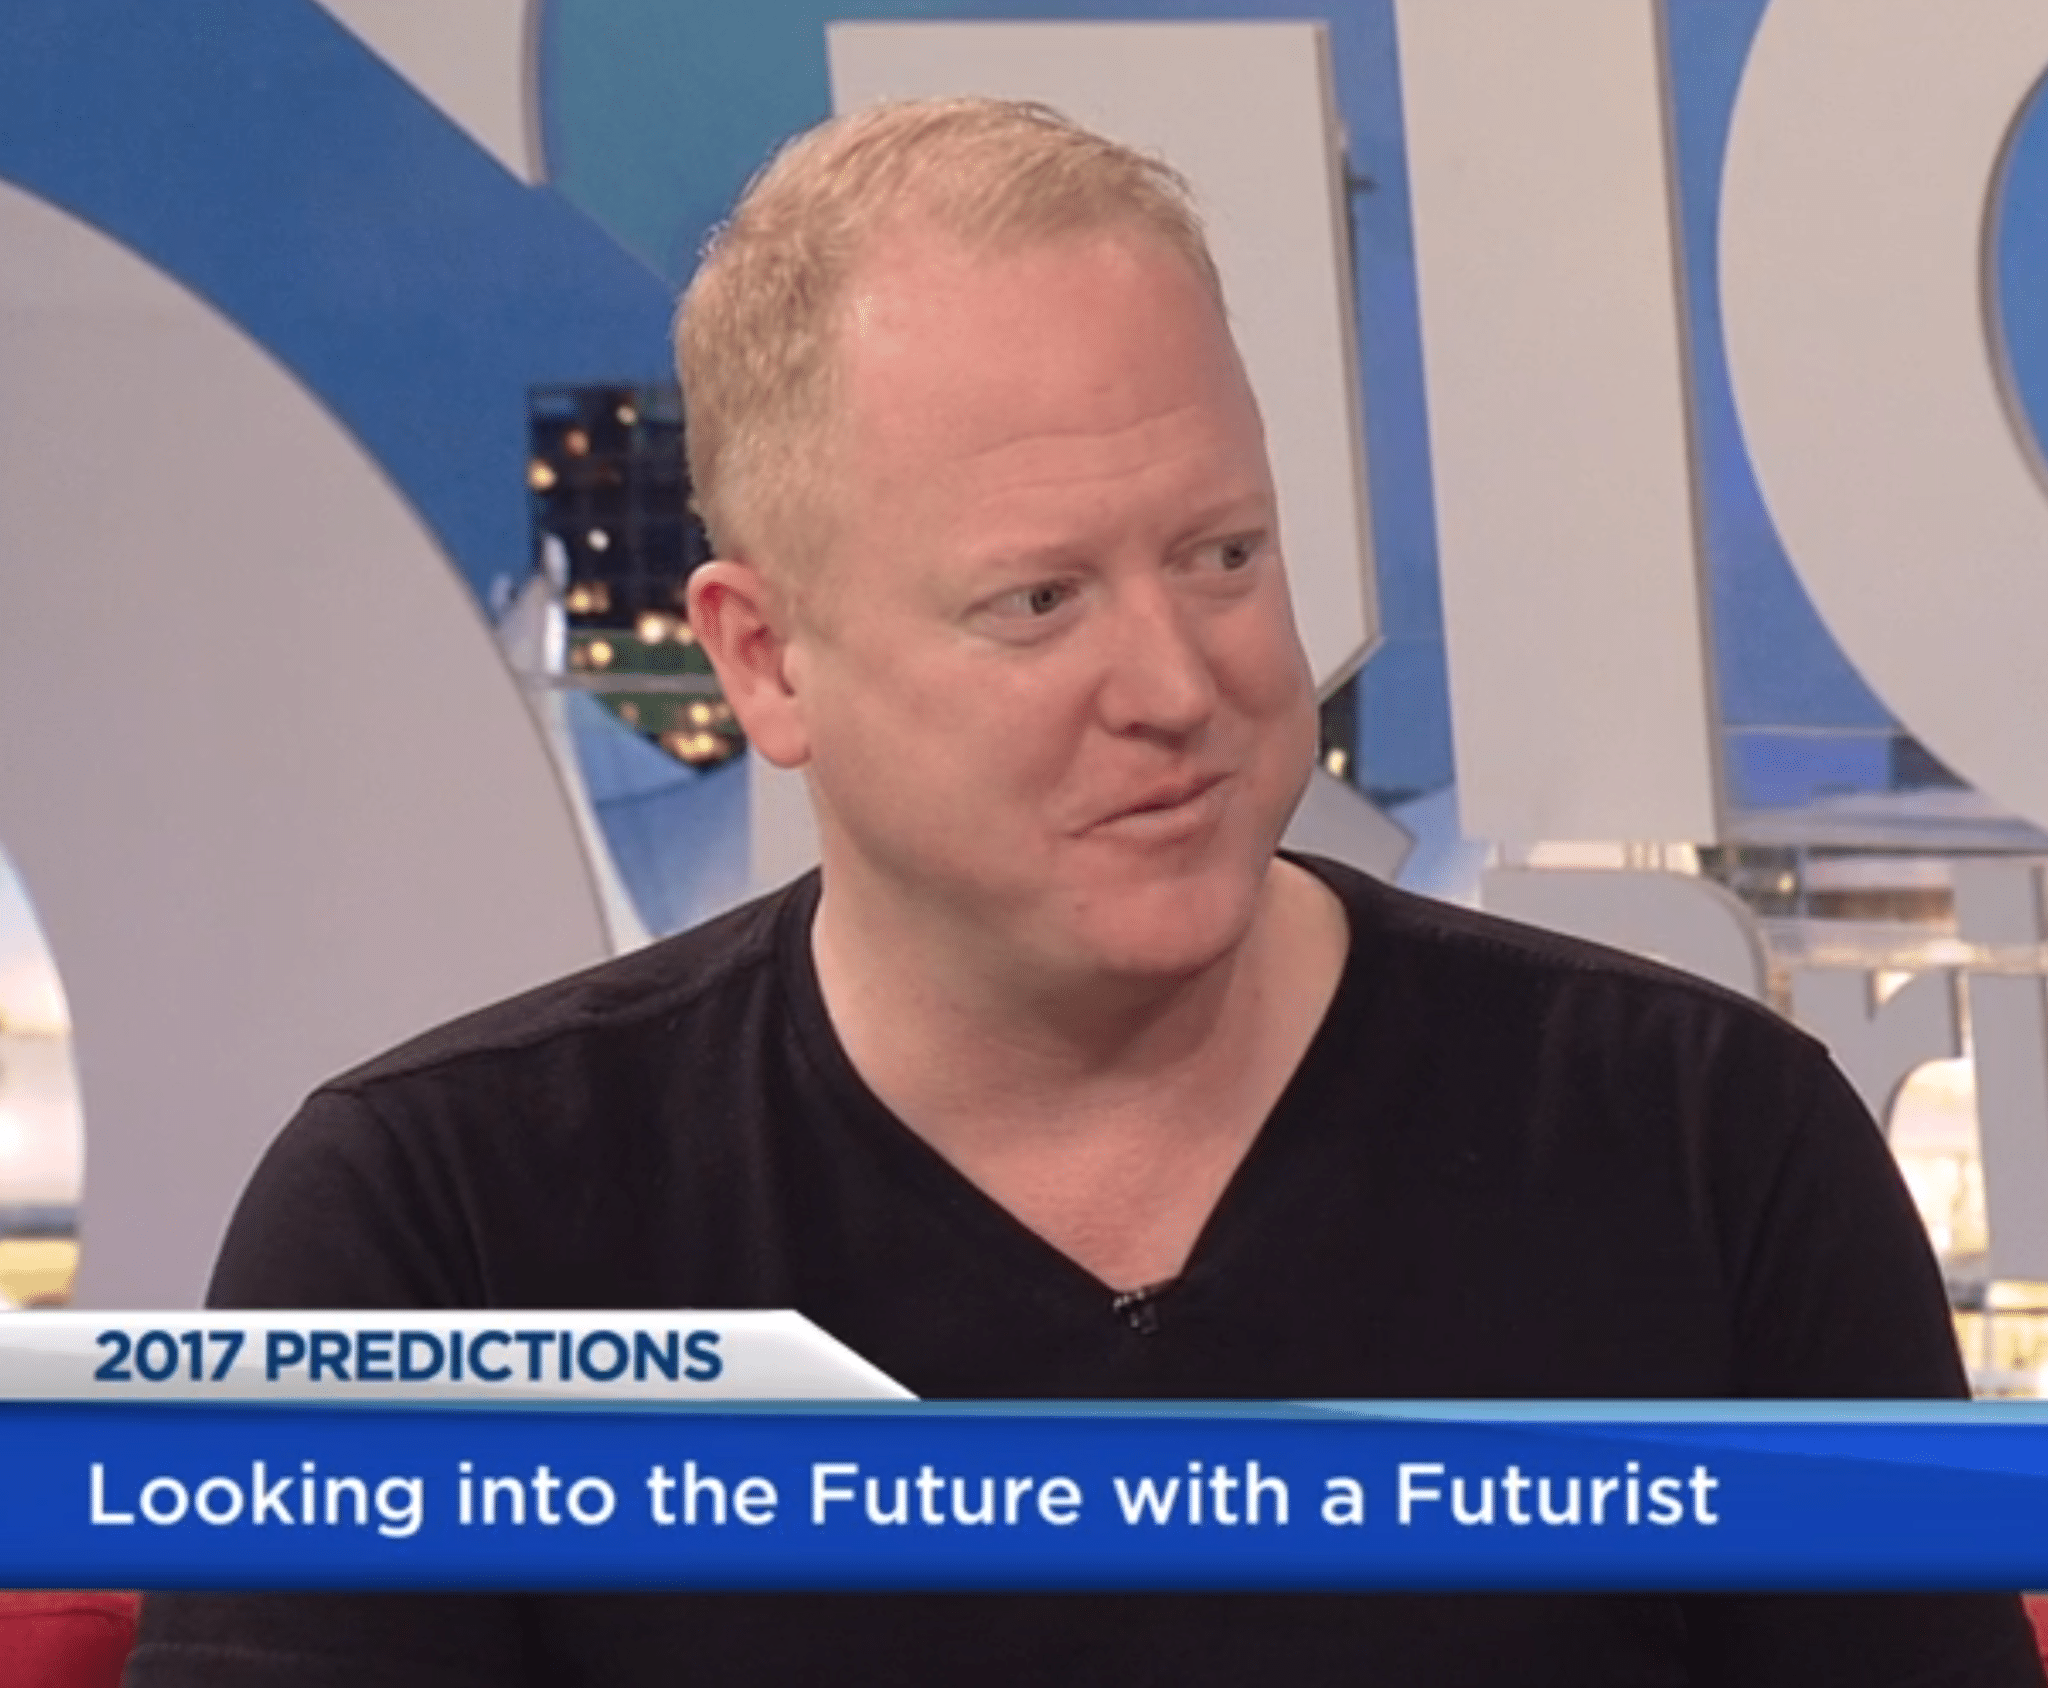 Global News - Look into the future for 2017